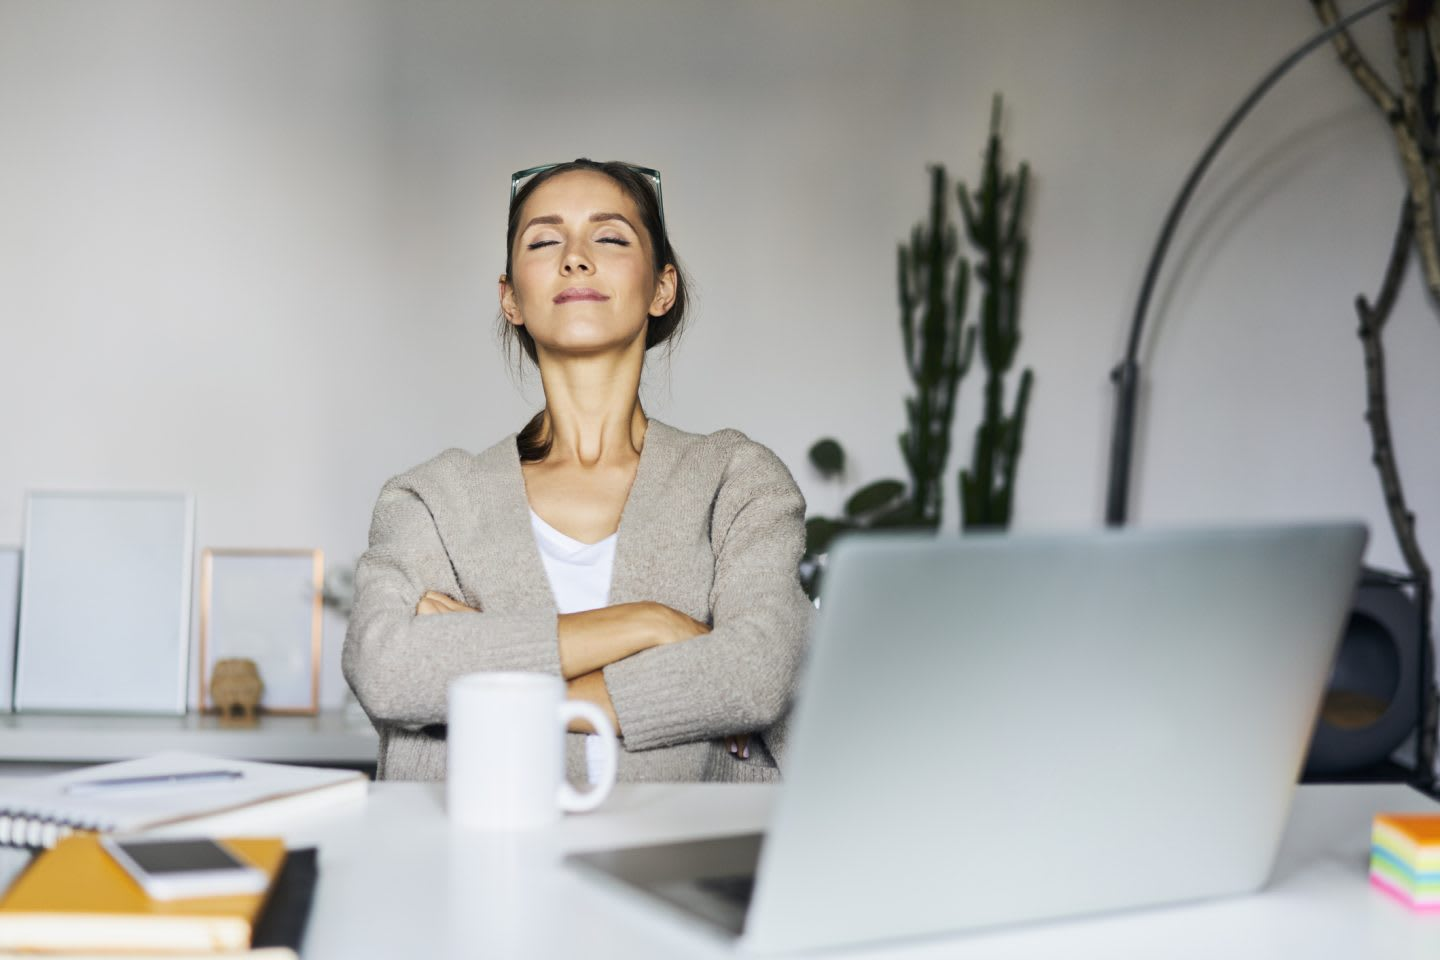 Young woman at home with laptop on desk having a break, work, breathing, stress